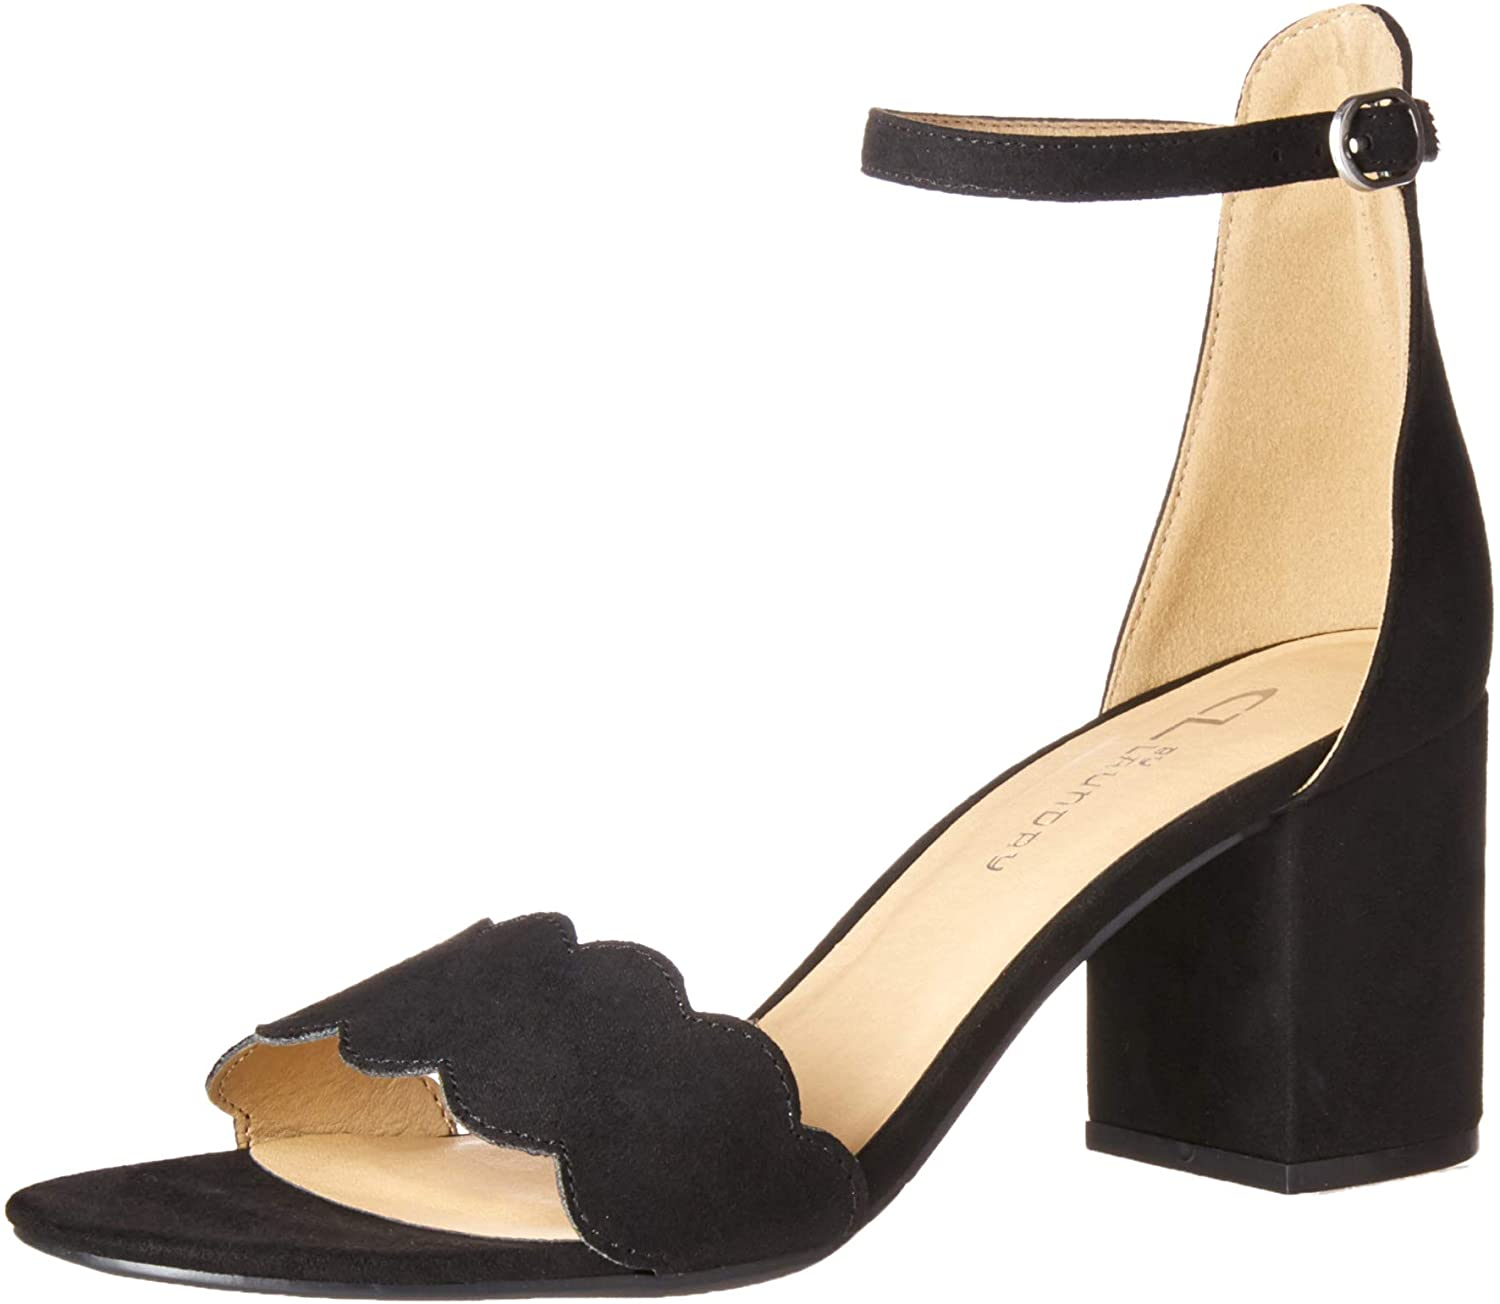 CL by Chinese Laundry Women's Jayne Heeled Sandal